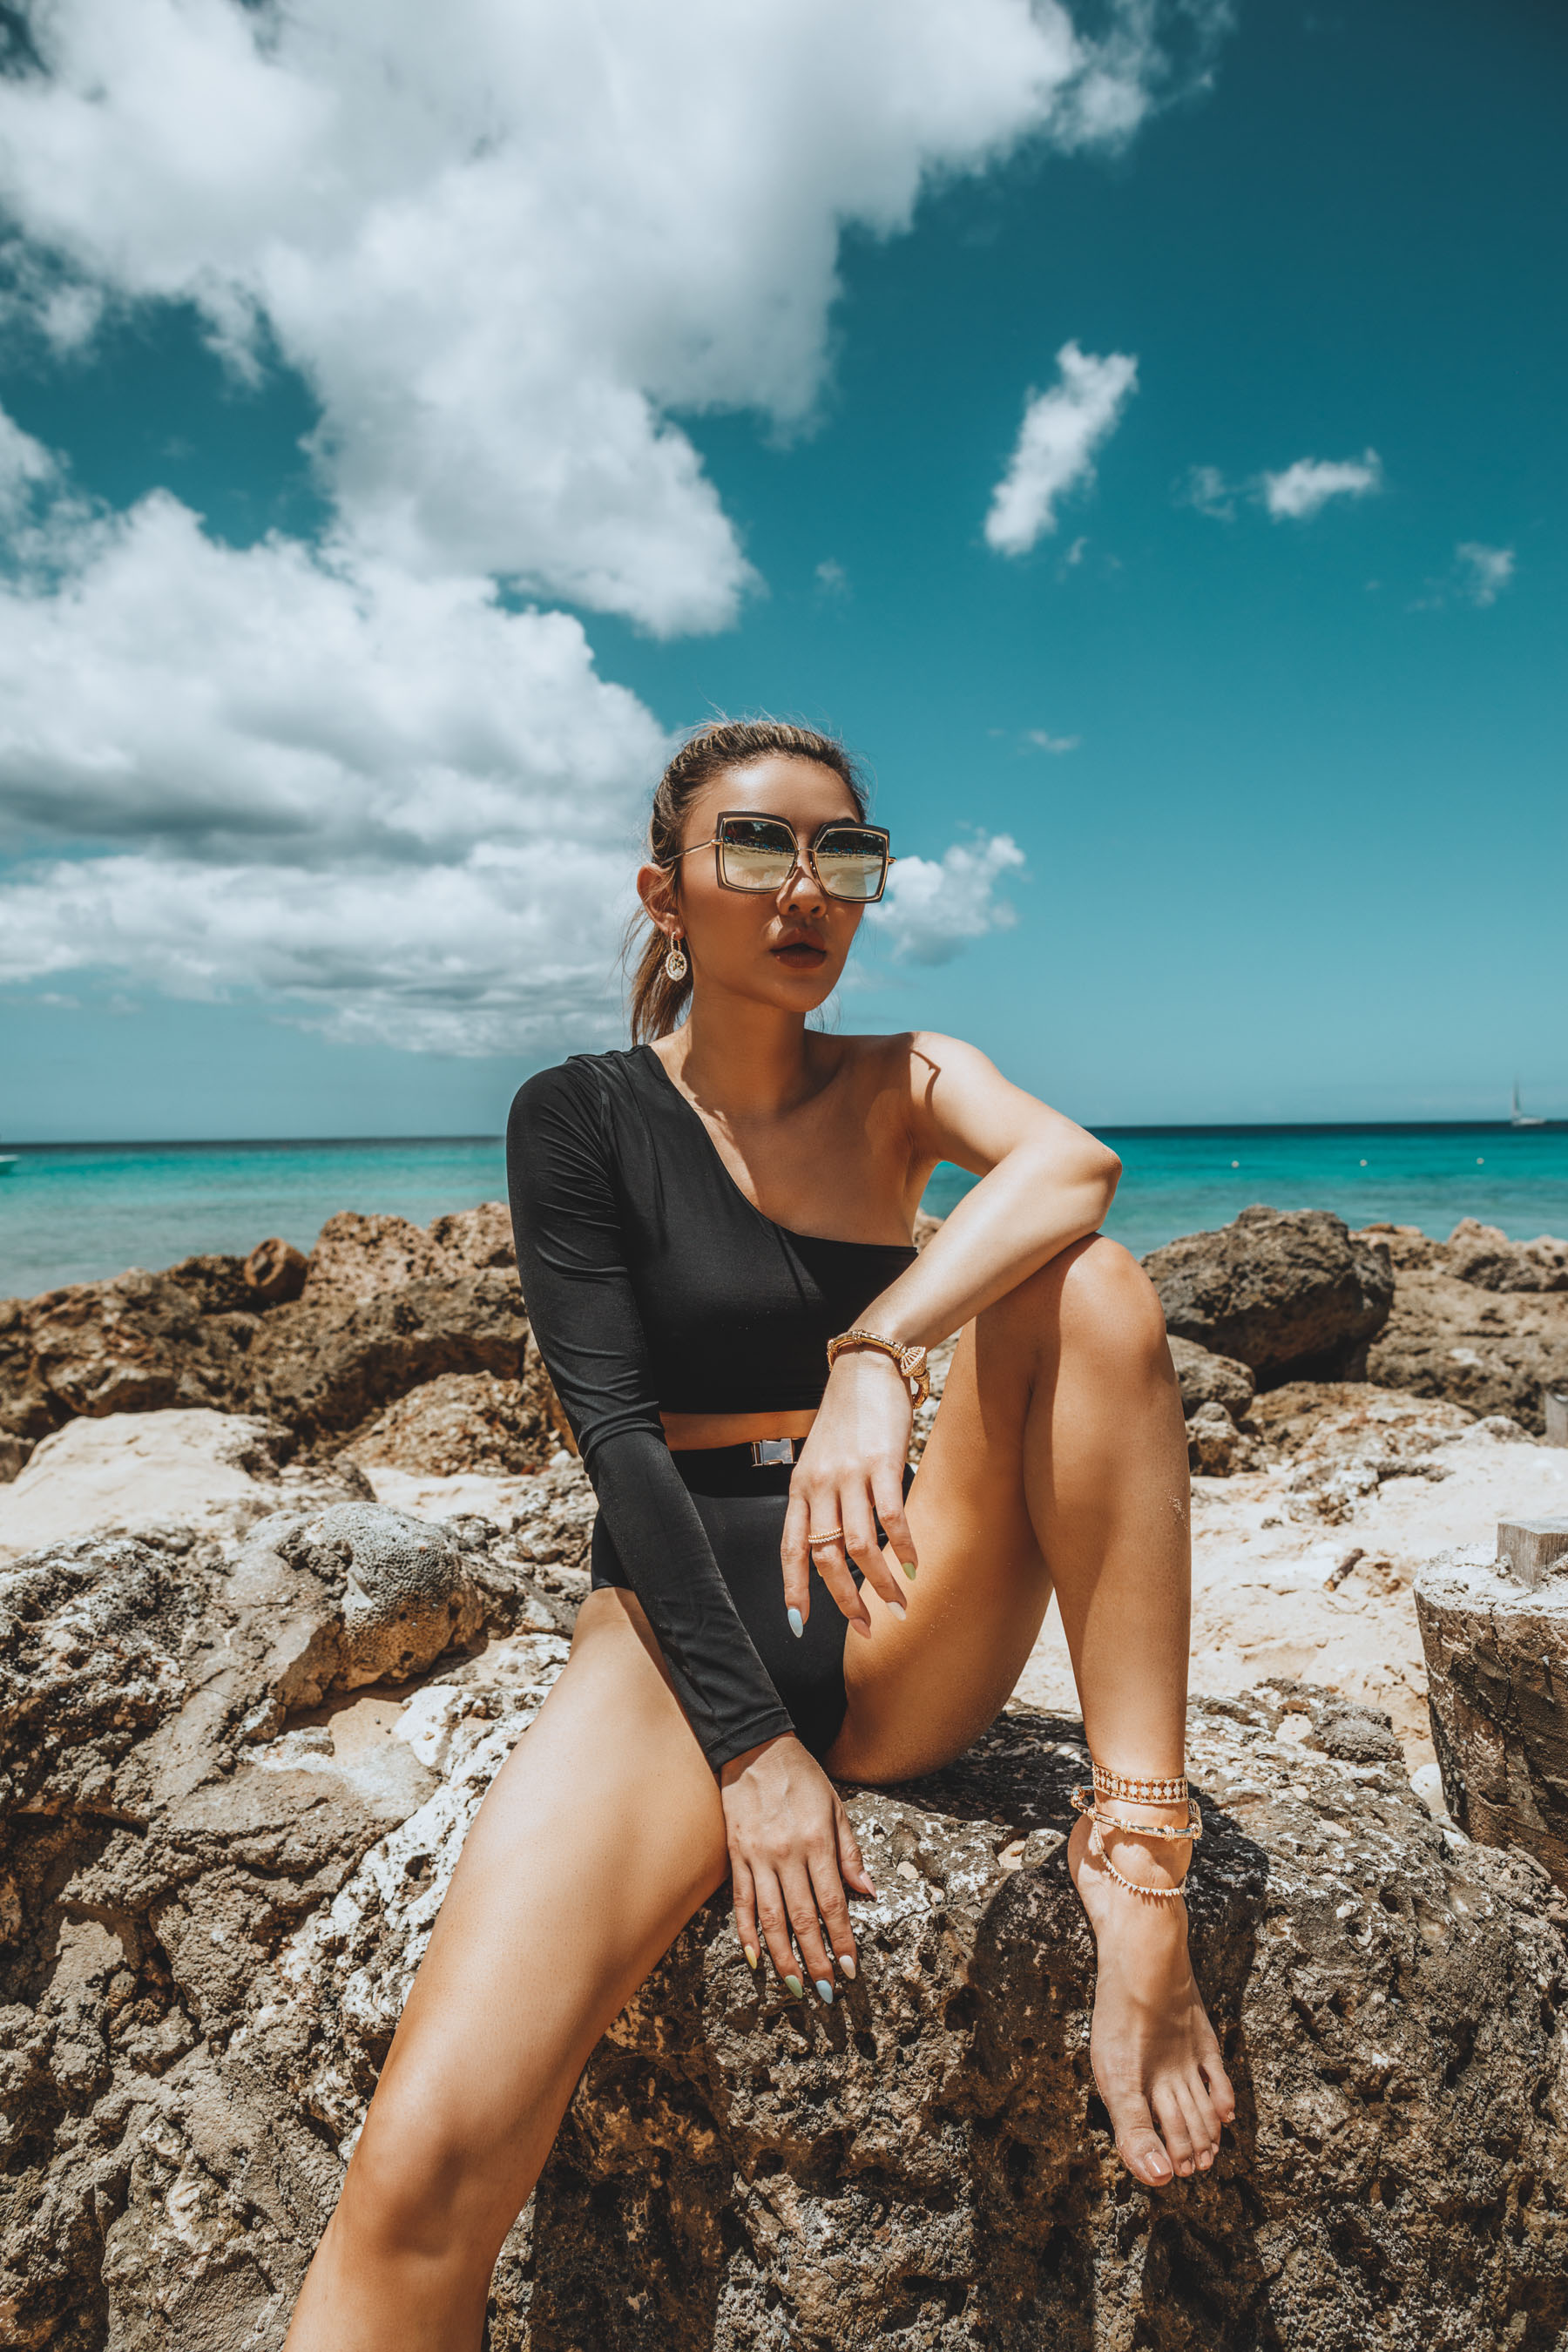 how to choose sunglasses for your face shape, Black Mira Bikini, Dita Eyewear Sunglasses, Eugenia Kim Hat, APM Monaco Jewelry // Notjessfashion.com